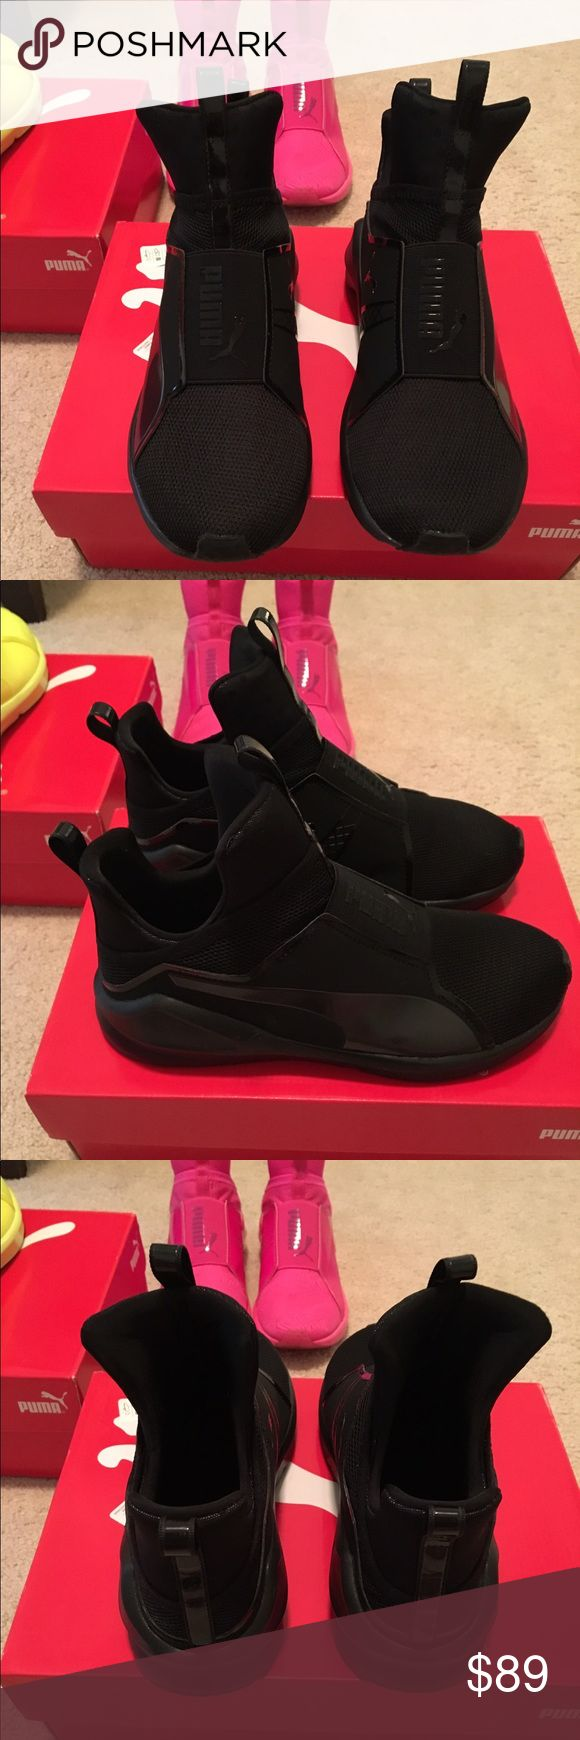 Kylie Jenner fierce core training shoes Worn few time in great condition. Fit true size with out thick socks. Very comfortable and light weight. Price is firm 😘🙏🏻 Puma Shoes Sneakers